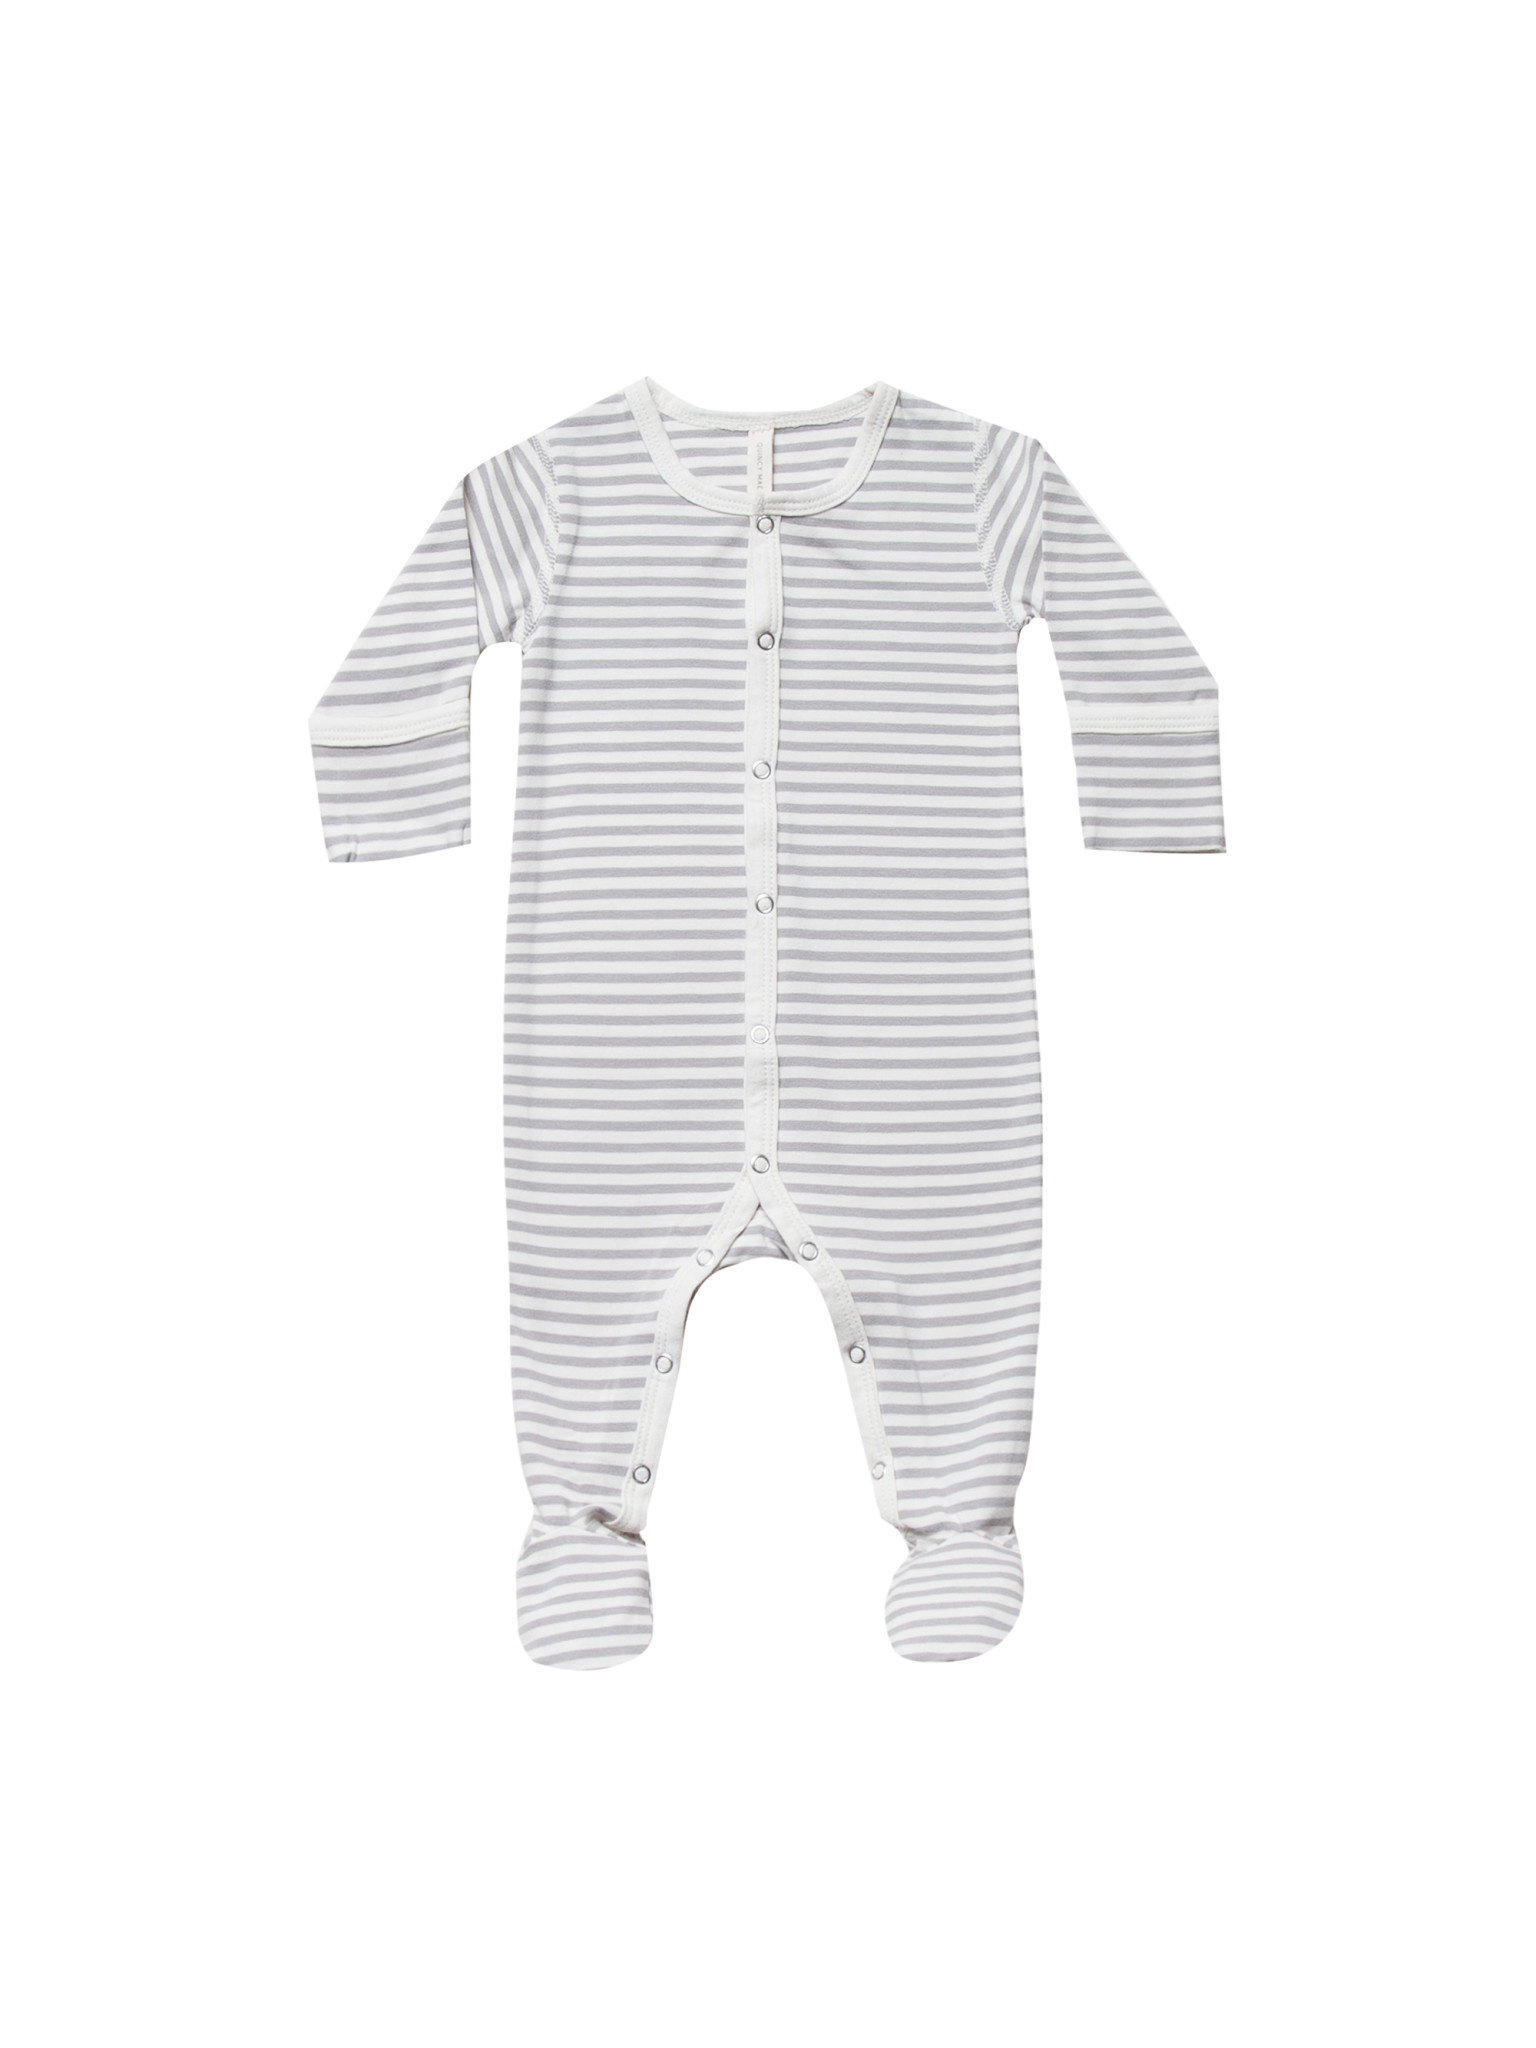 QUINCY MAE Organic Full Snap Footie